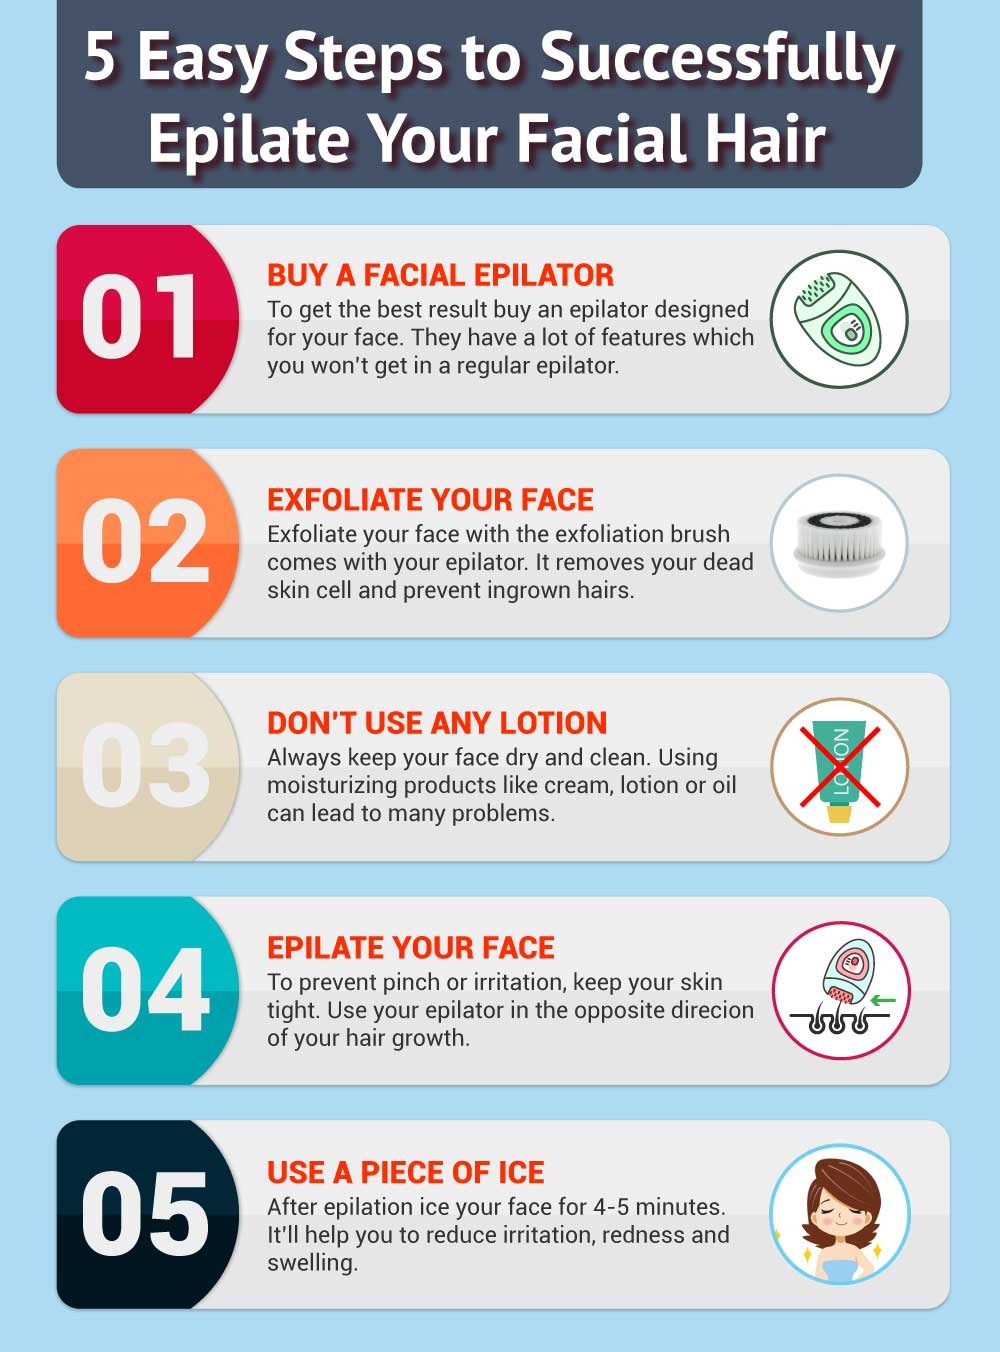 5 easy steps to epilate your facial hair